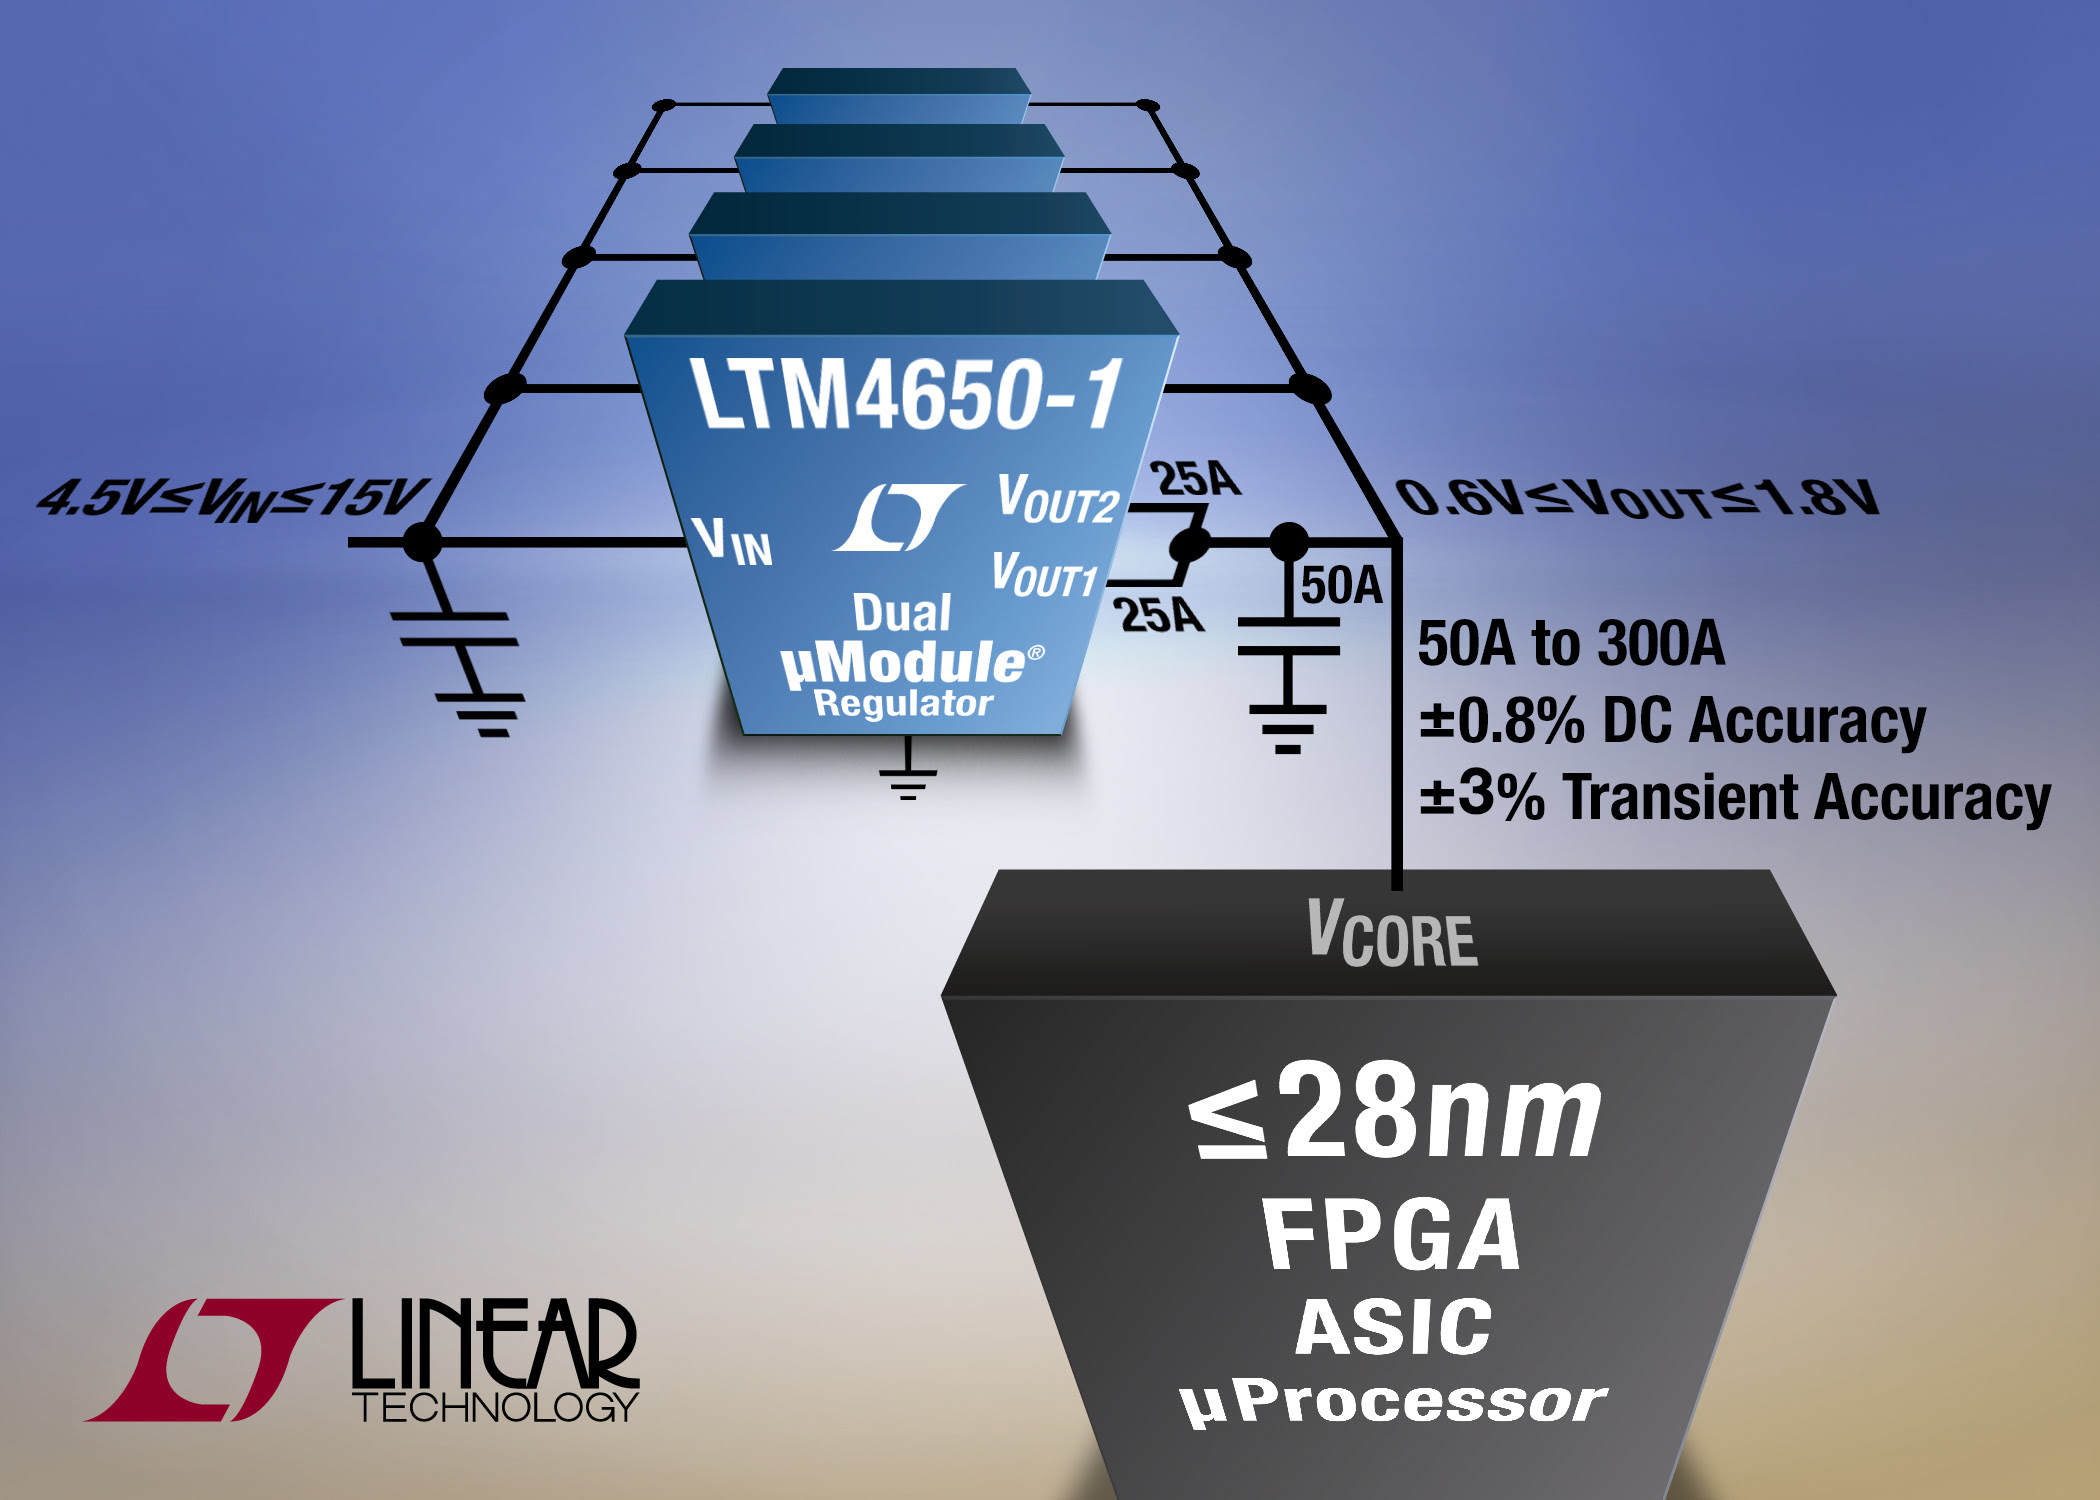 50A to 300A, Scalable µModule Regulator Needs 60% Less Capacitance to Power Sub-28nm GPUs, FPGAs, ASICs & Processors